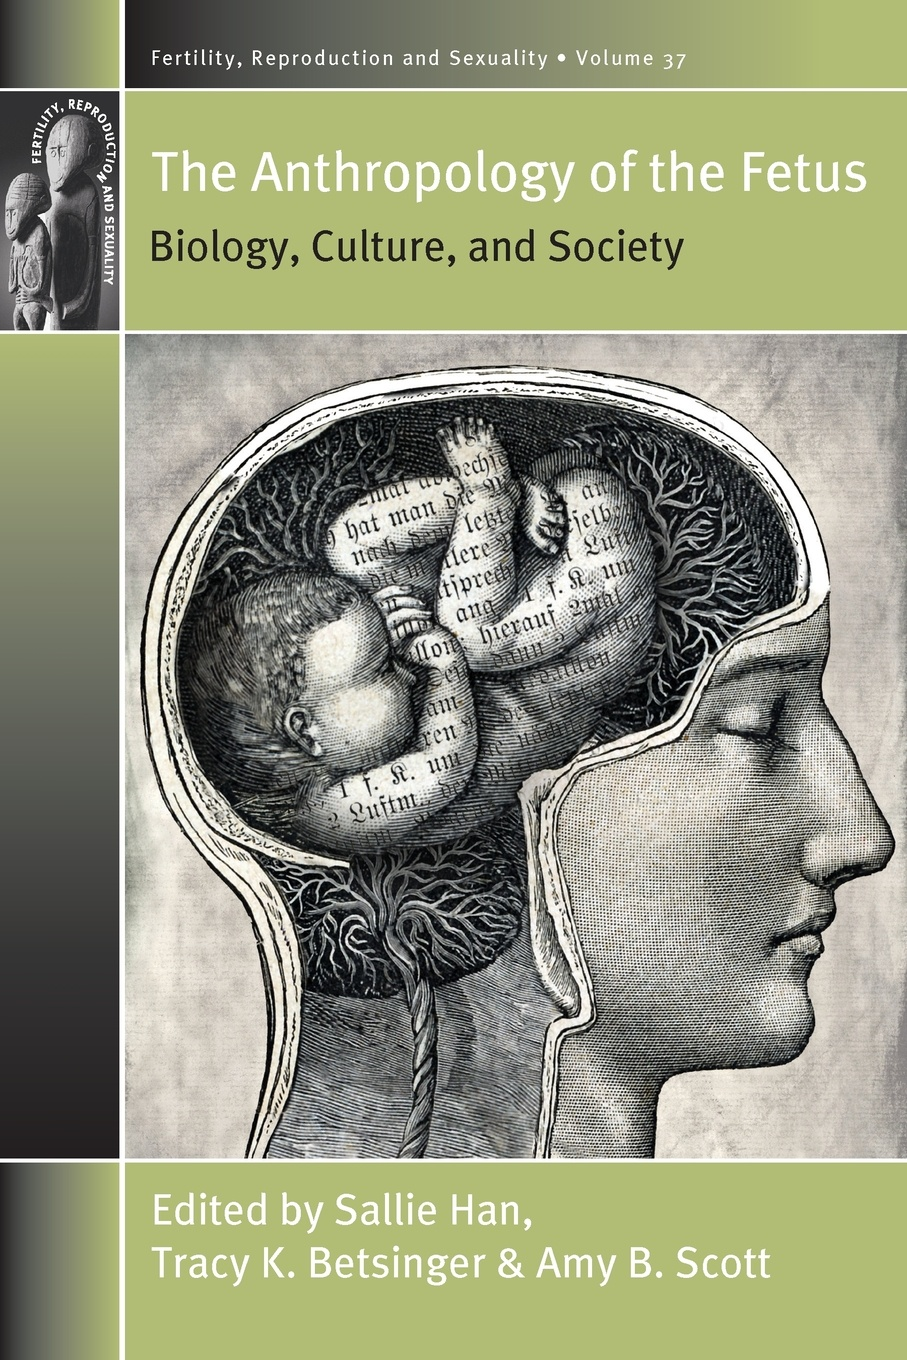 Anthropology of the Fetus. Biology, Culture, and Society jeremy macclancy anthropology in the public arena historical and contemporary contexts